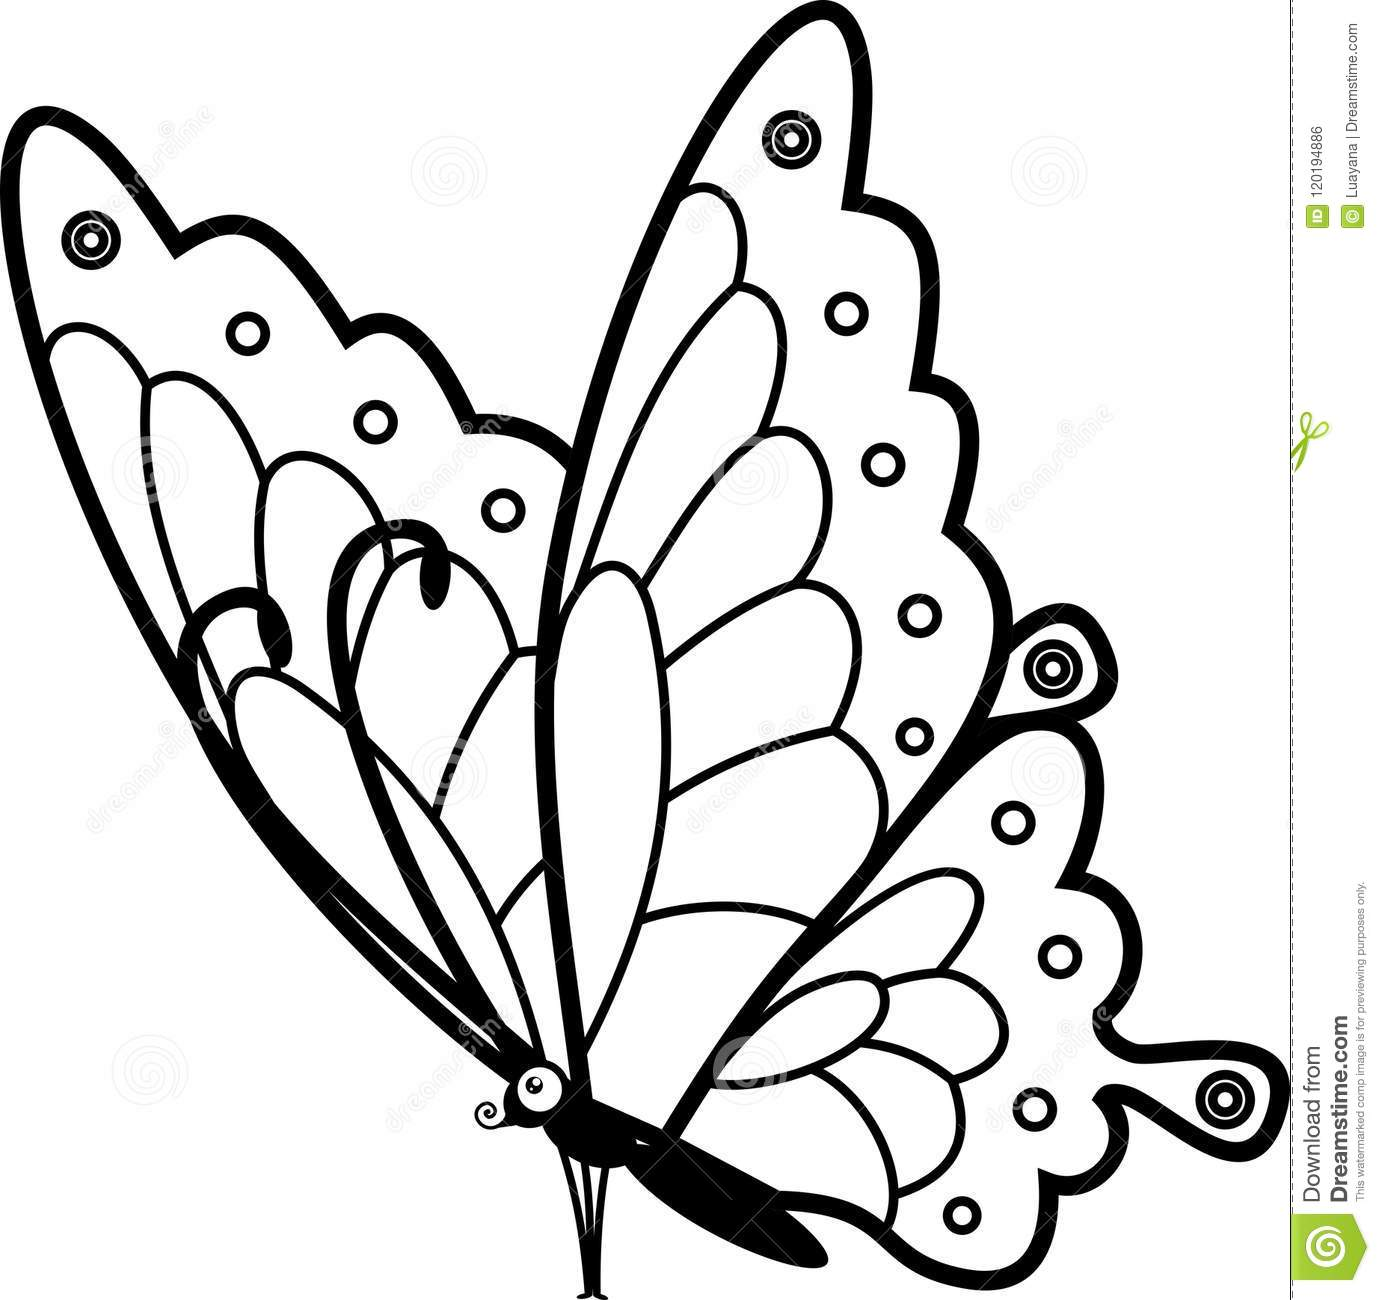 Sitting Butterfly Coloring Page Stock Vector ...